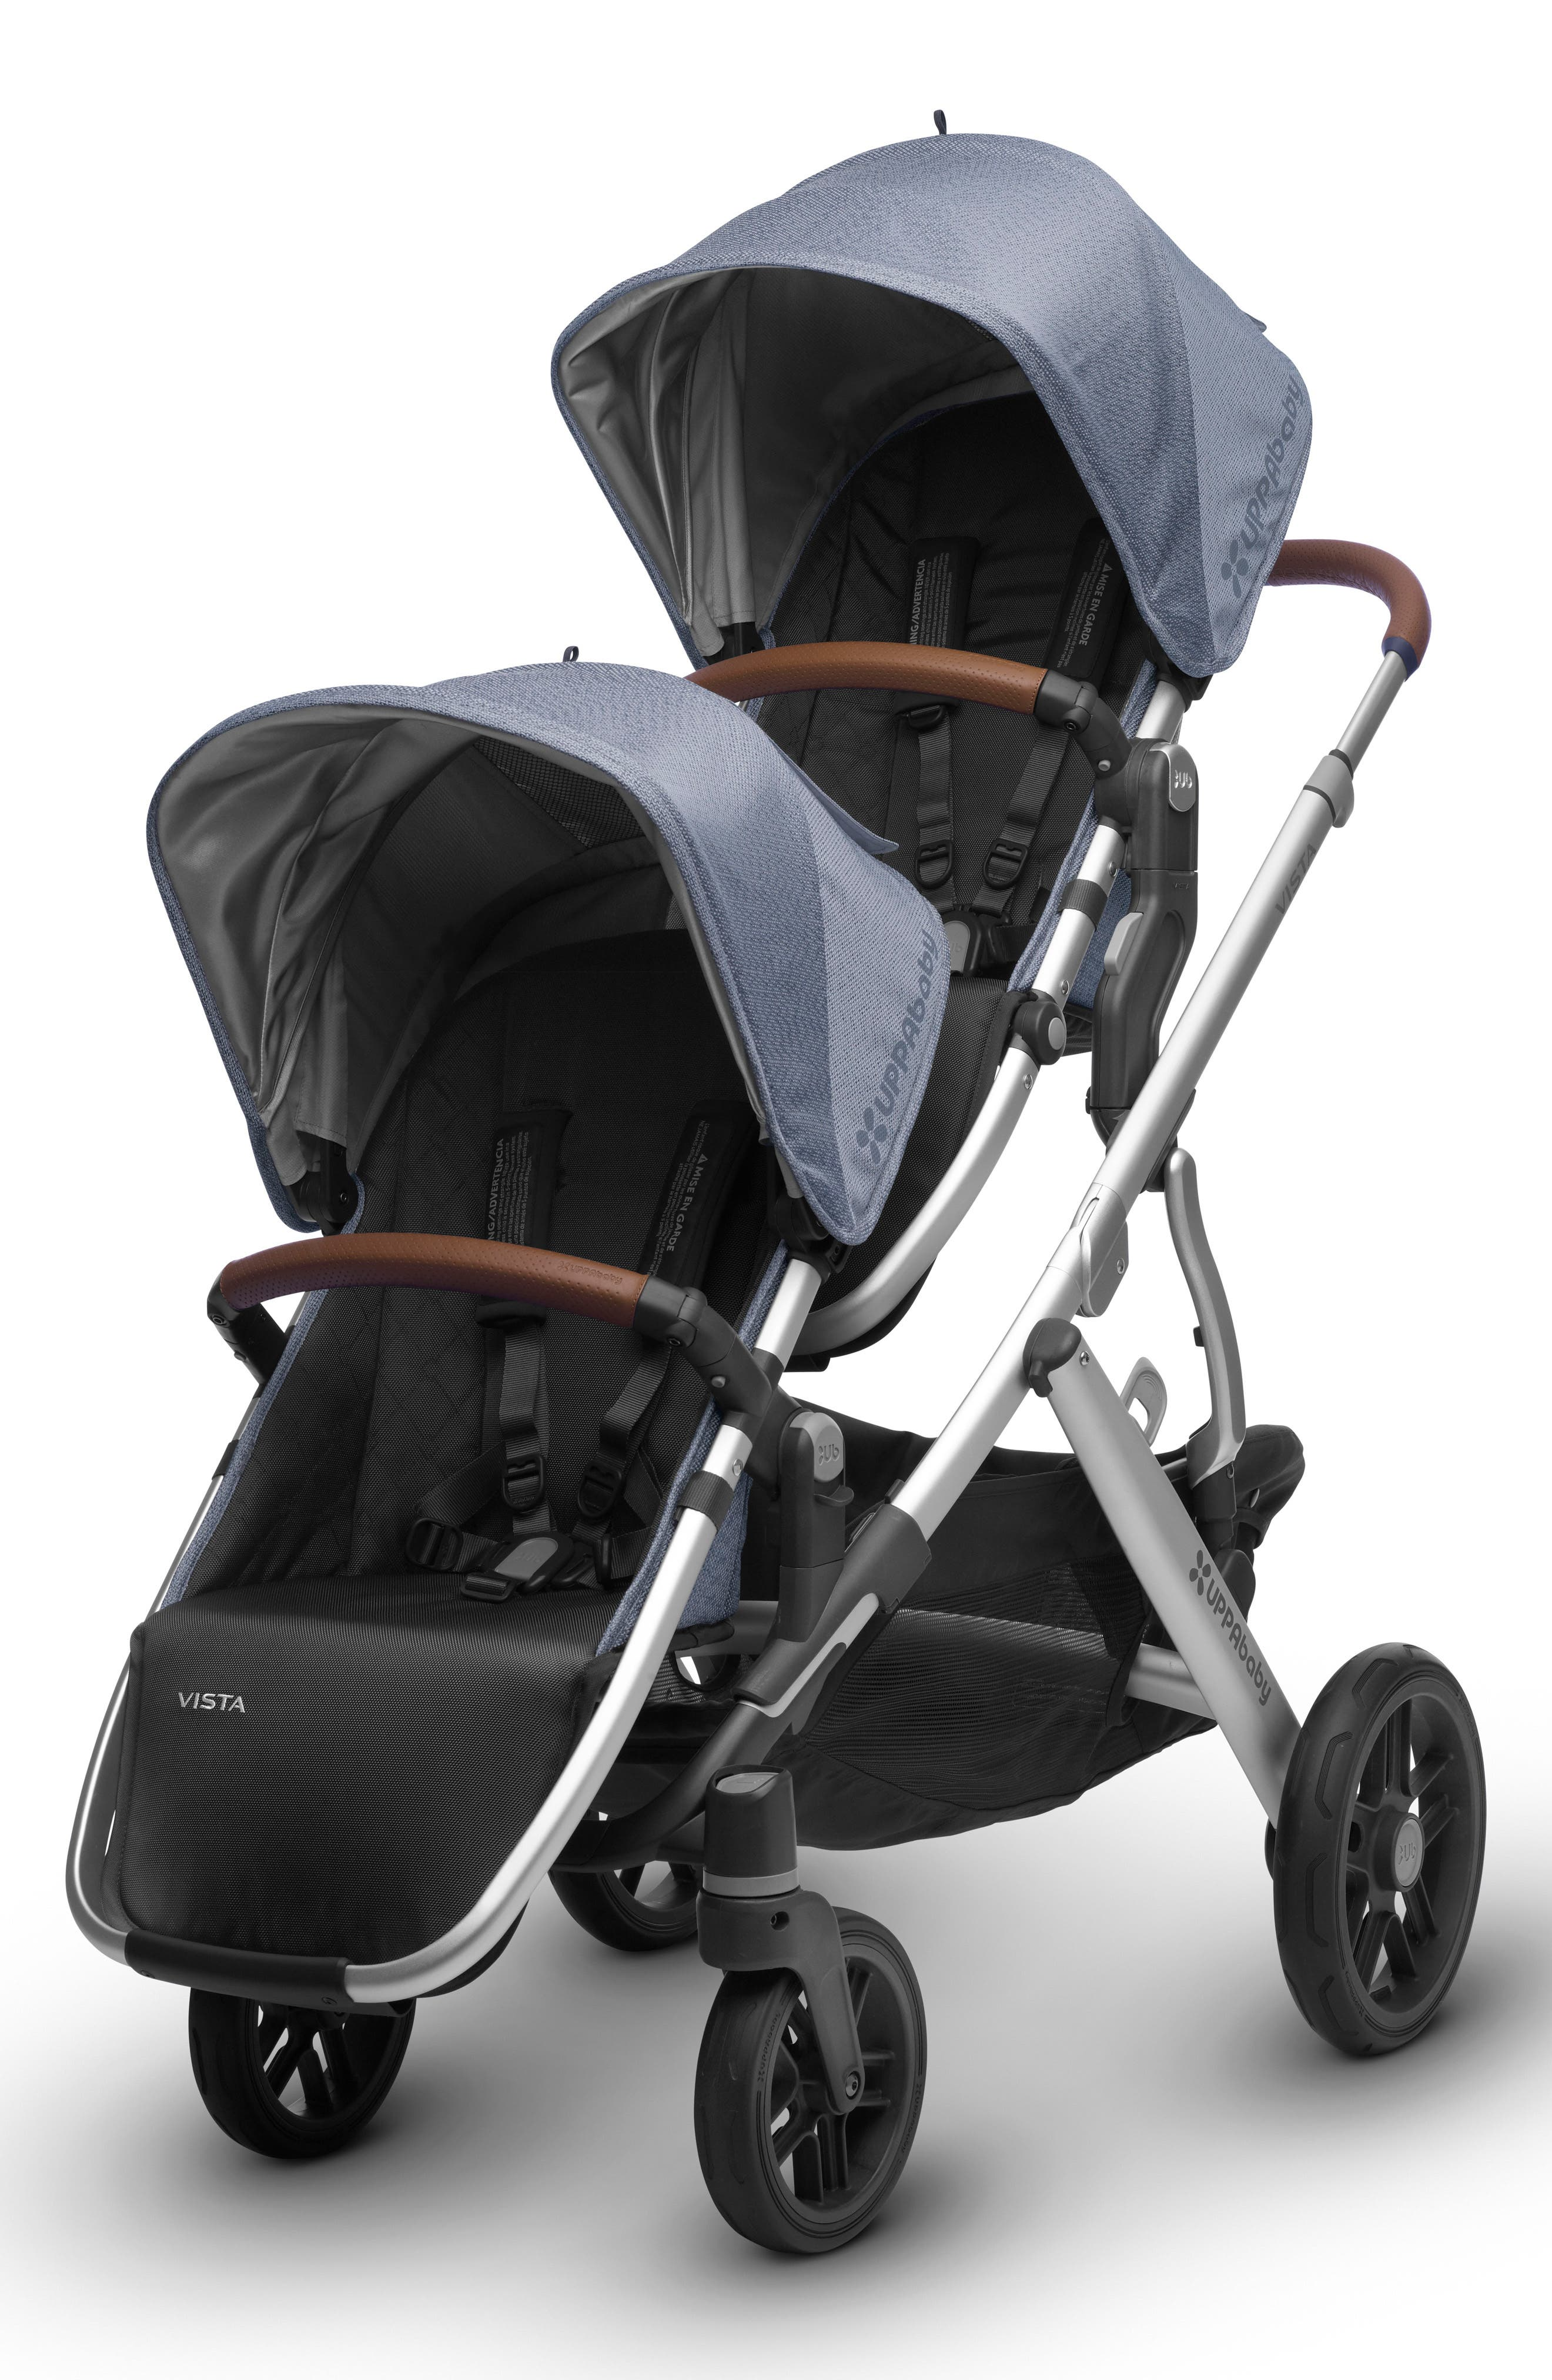 2017 Limited Edition Henry Rumble Seat for VISTA Stroller,                             Alternate thumbnail 3, color,                             Blue Marl